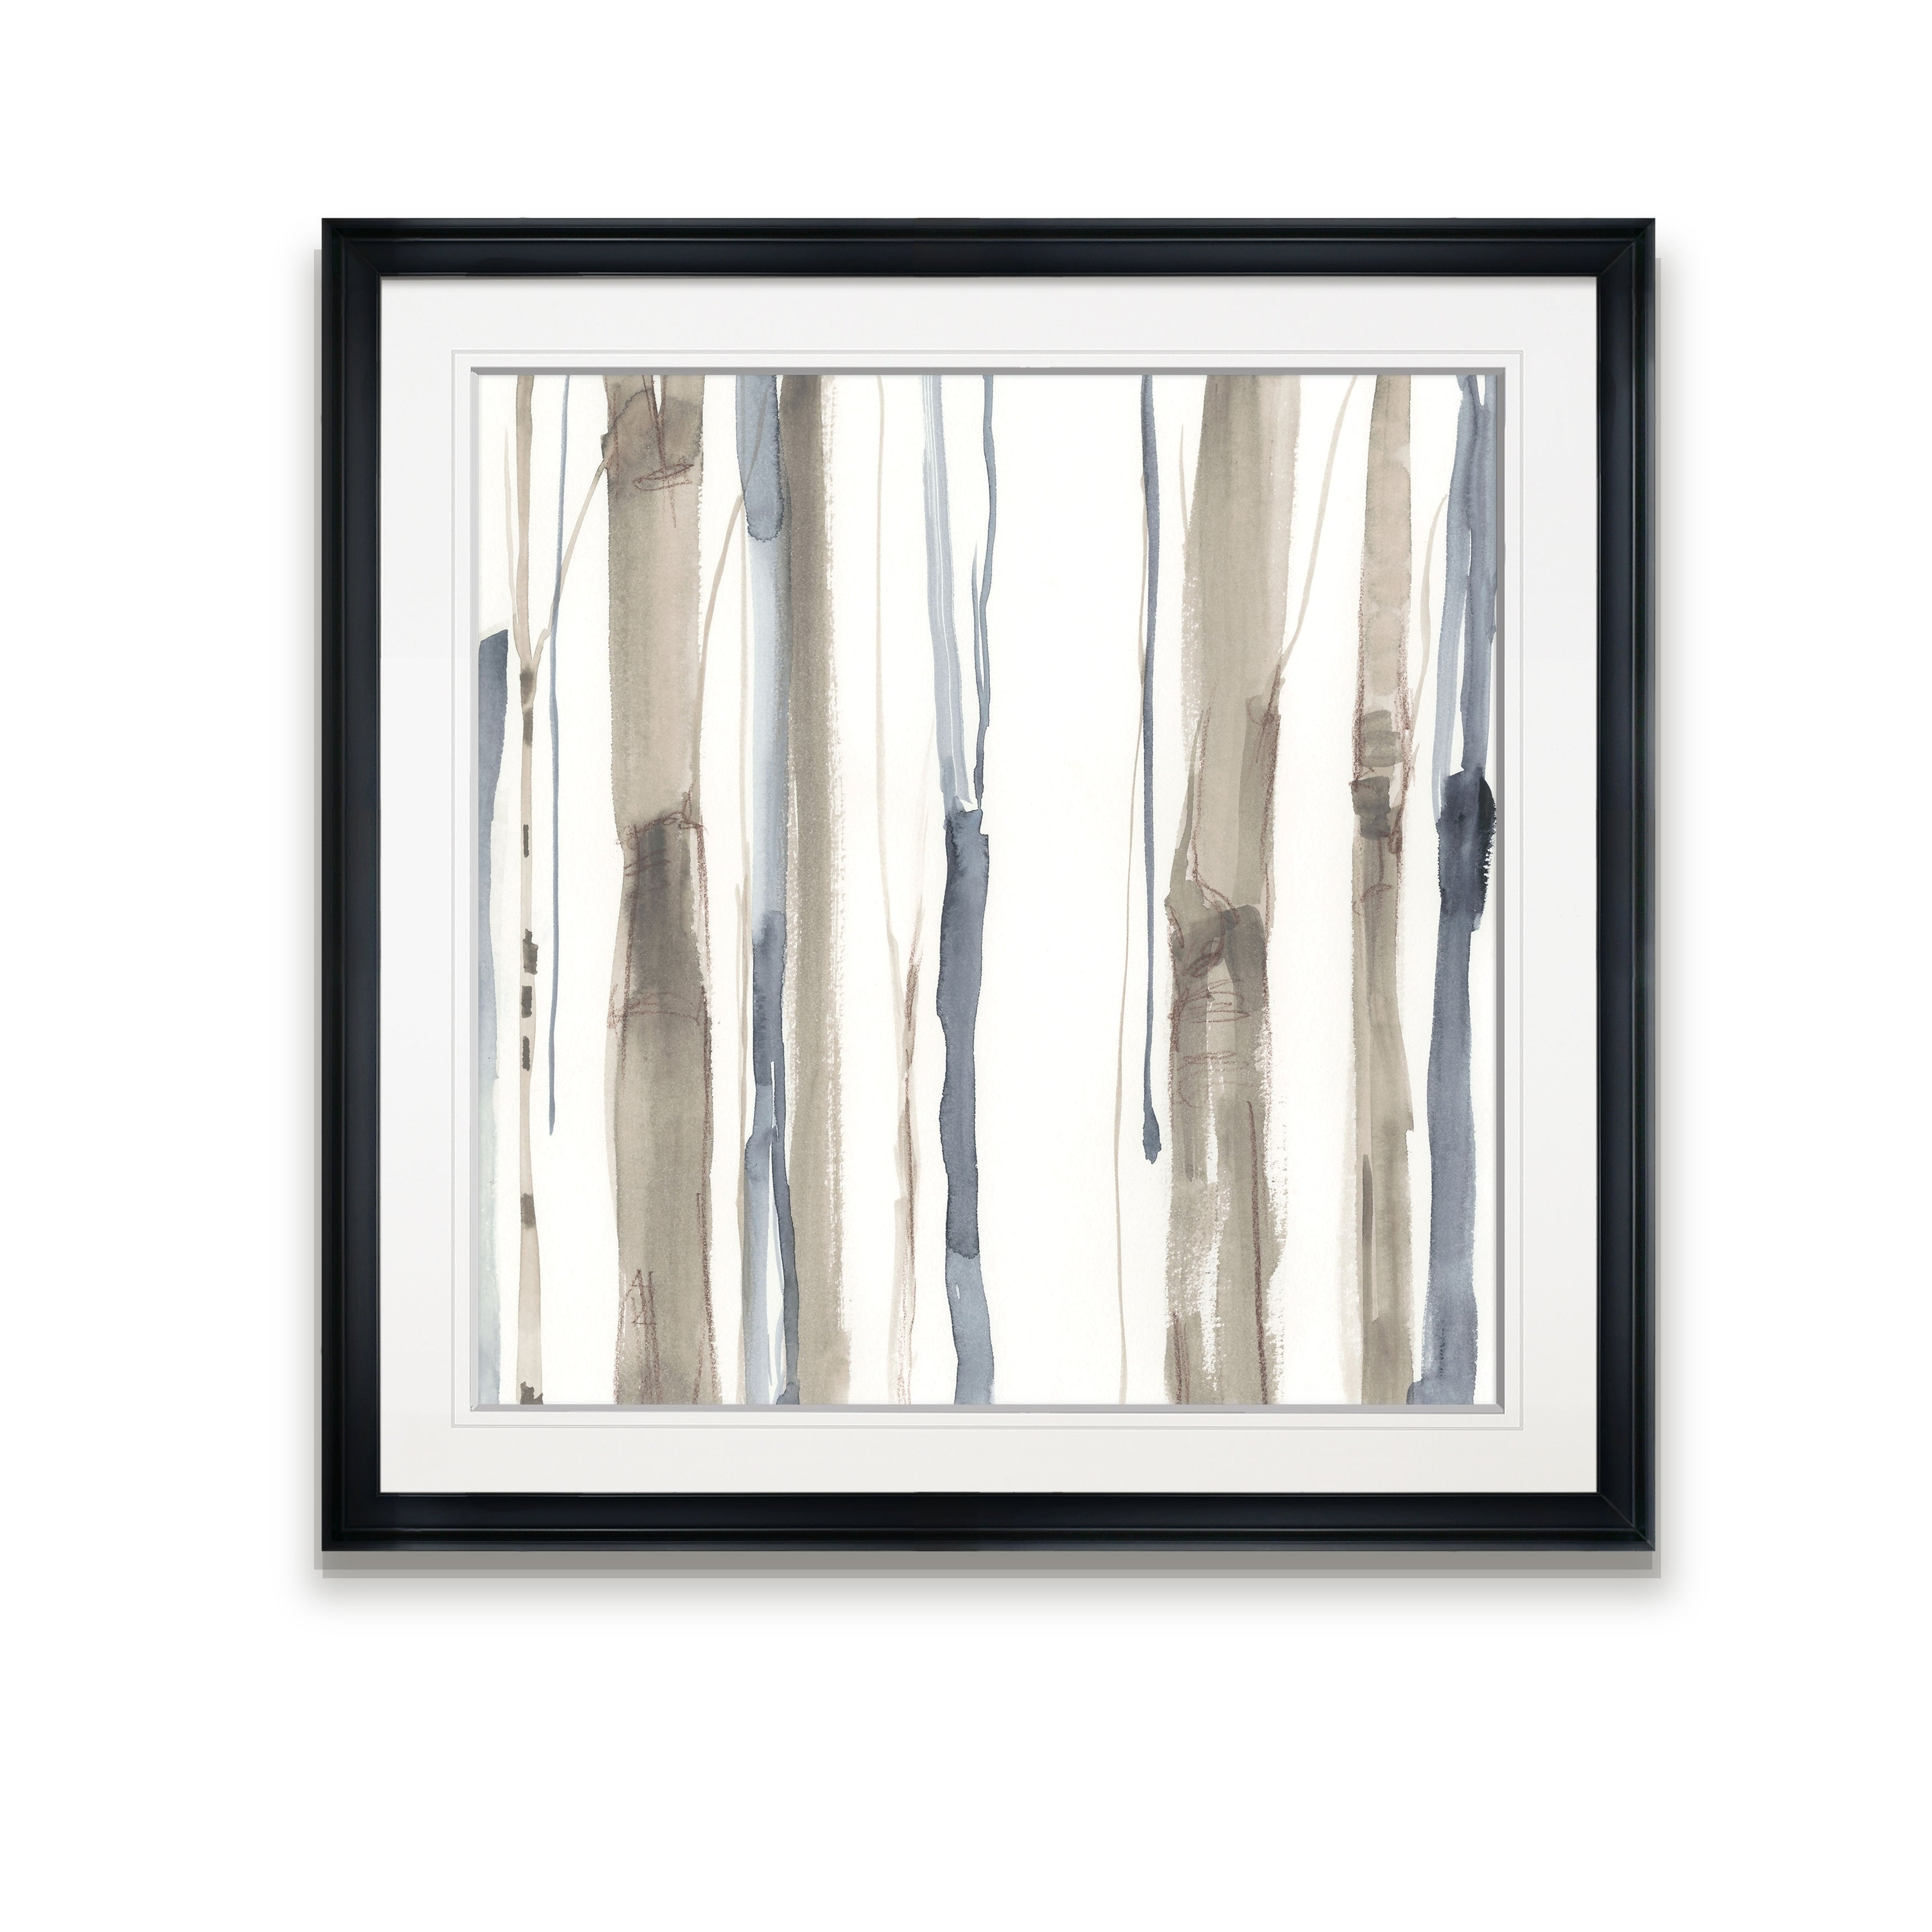 Duo Tone Trees I Framed Giclee Print Overstock 24249928